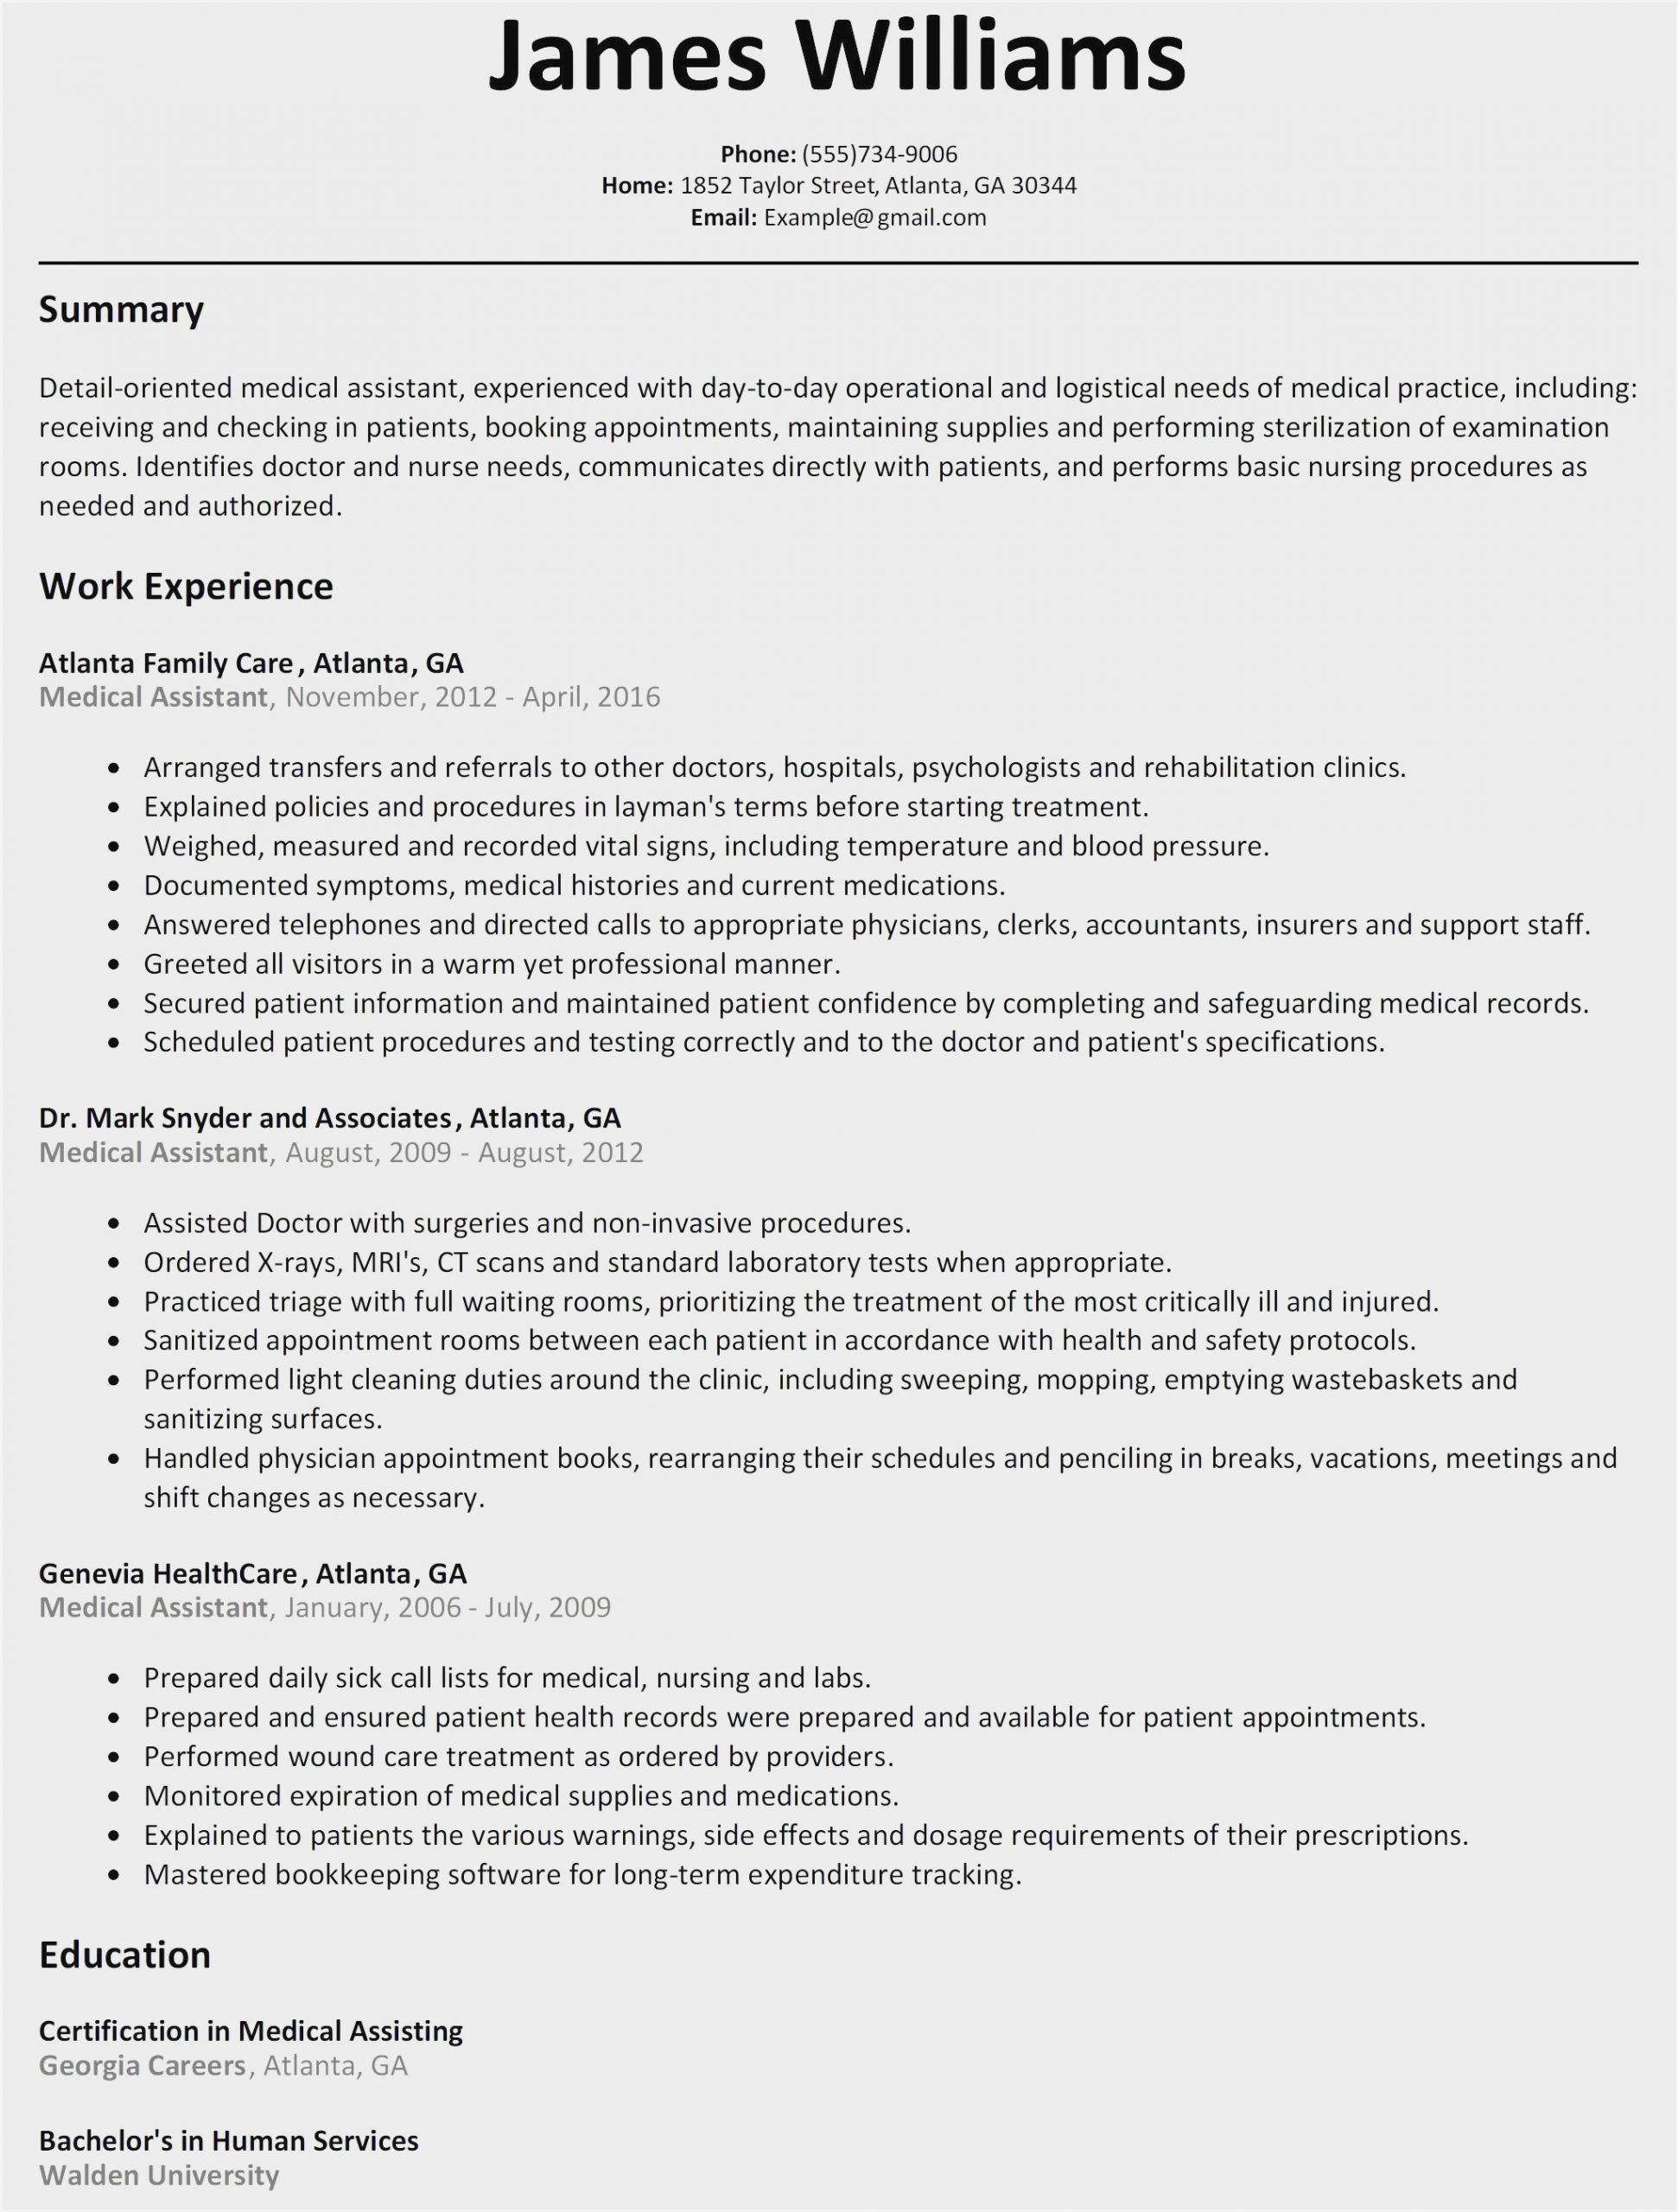 best resume writing services us all industries professional service atlanta expert Resume Professional Resume Writing Service Atlanta